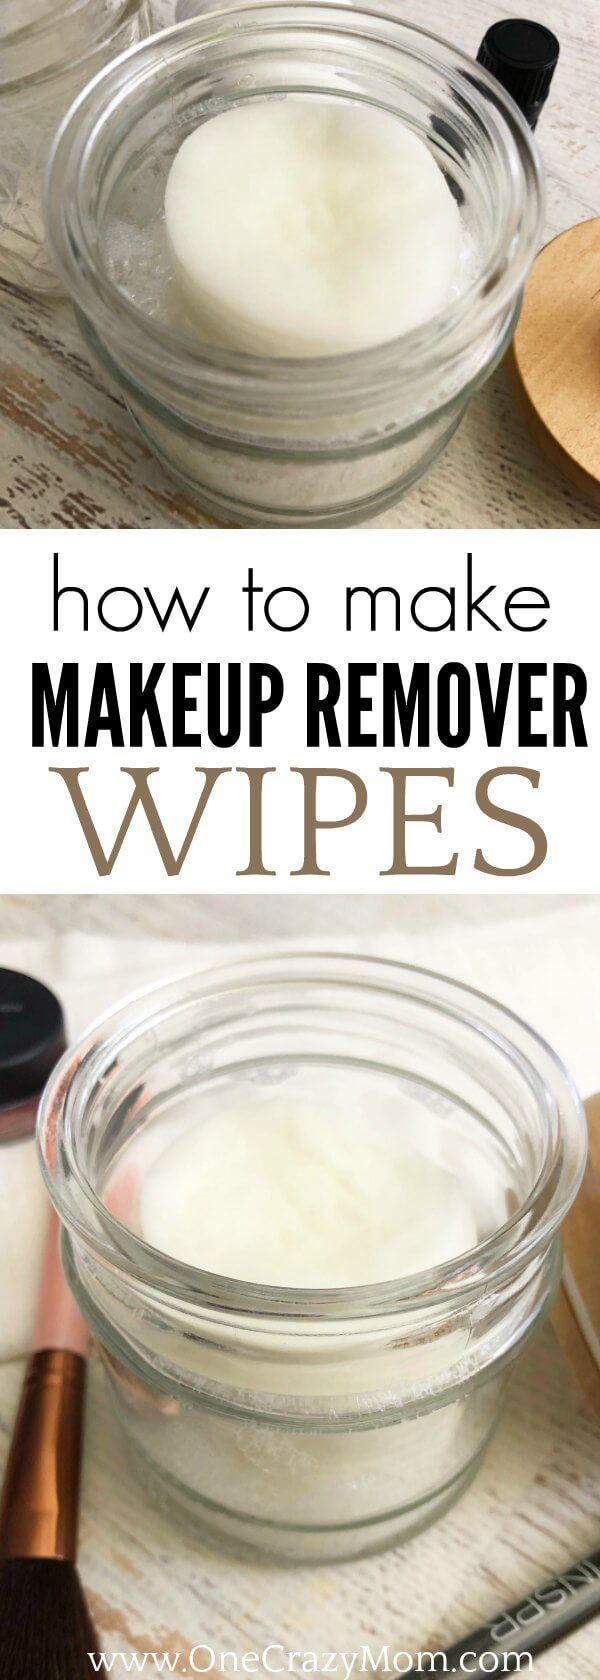 Learn how to make makeup remover wipes. These are the best